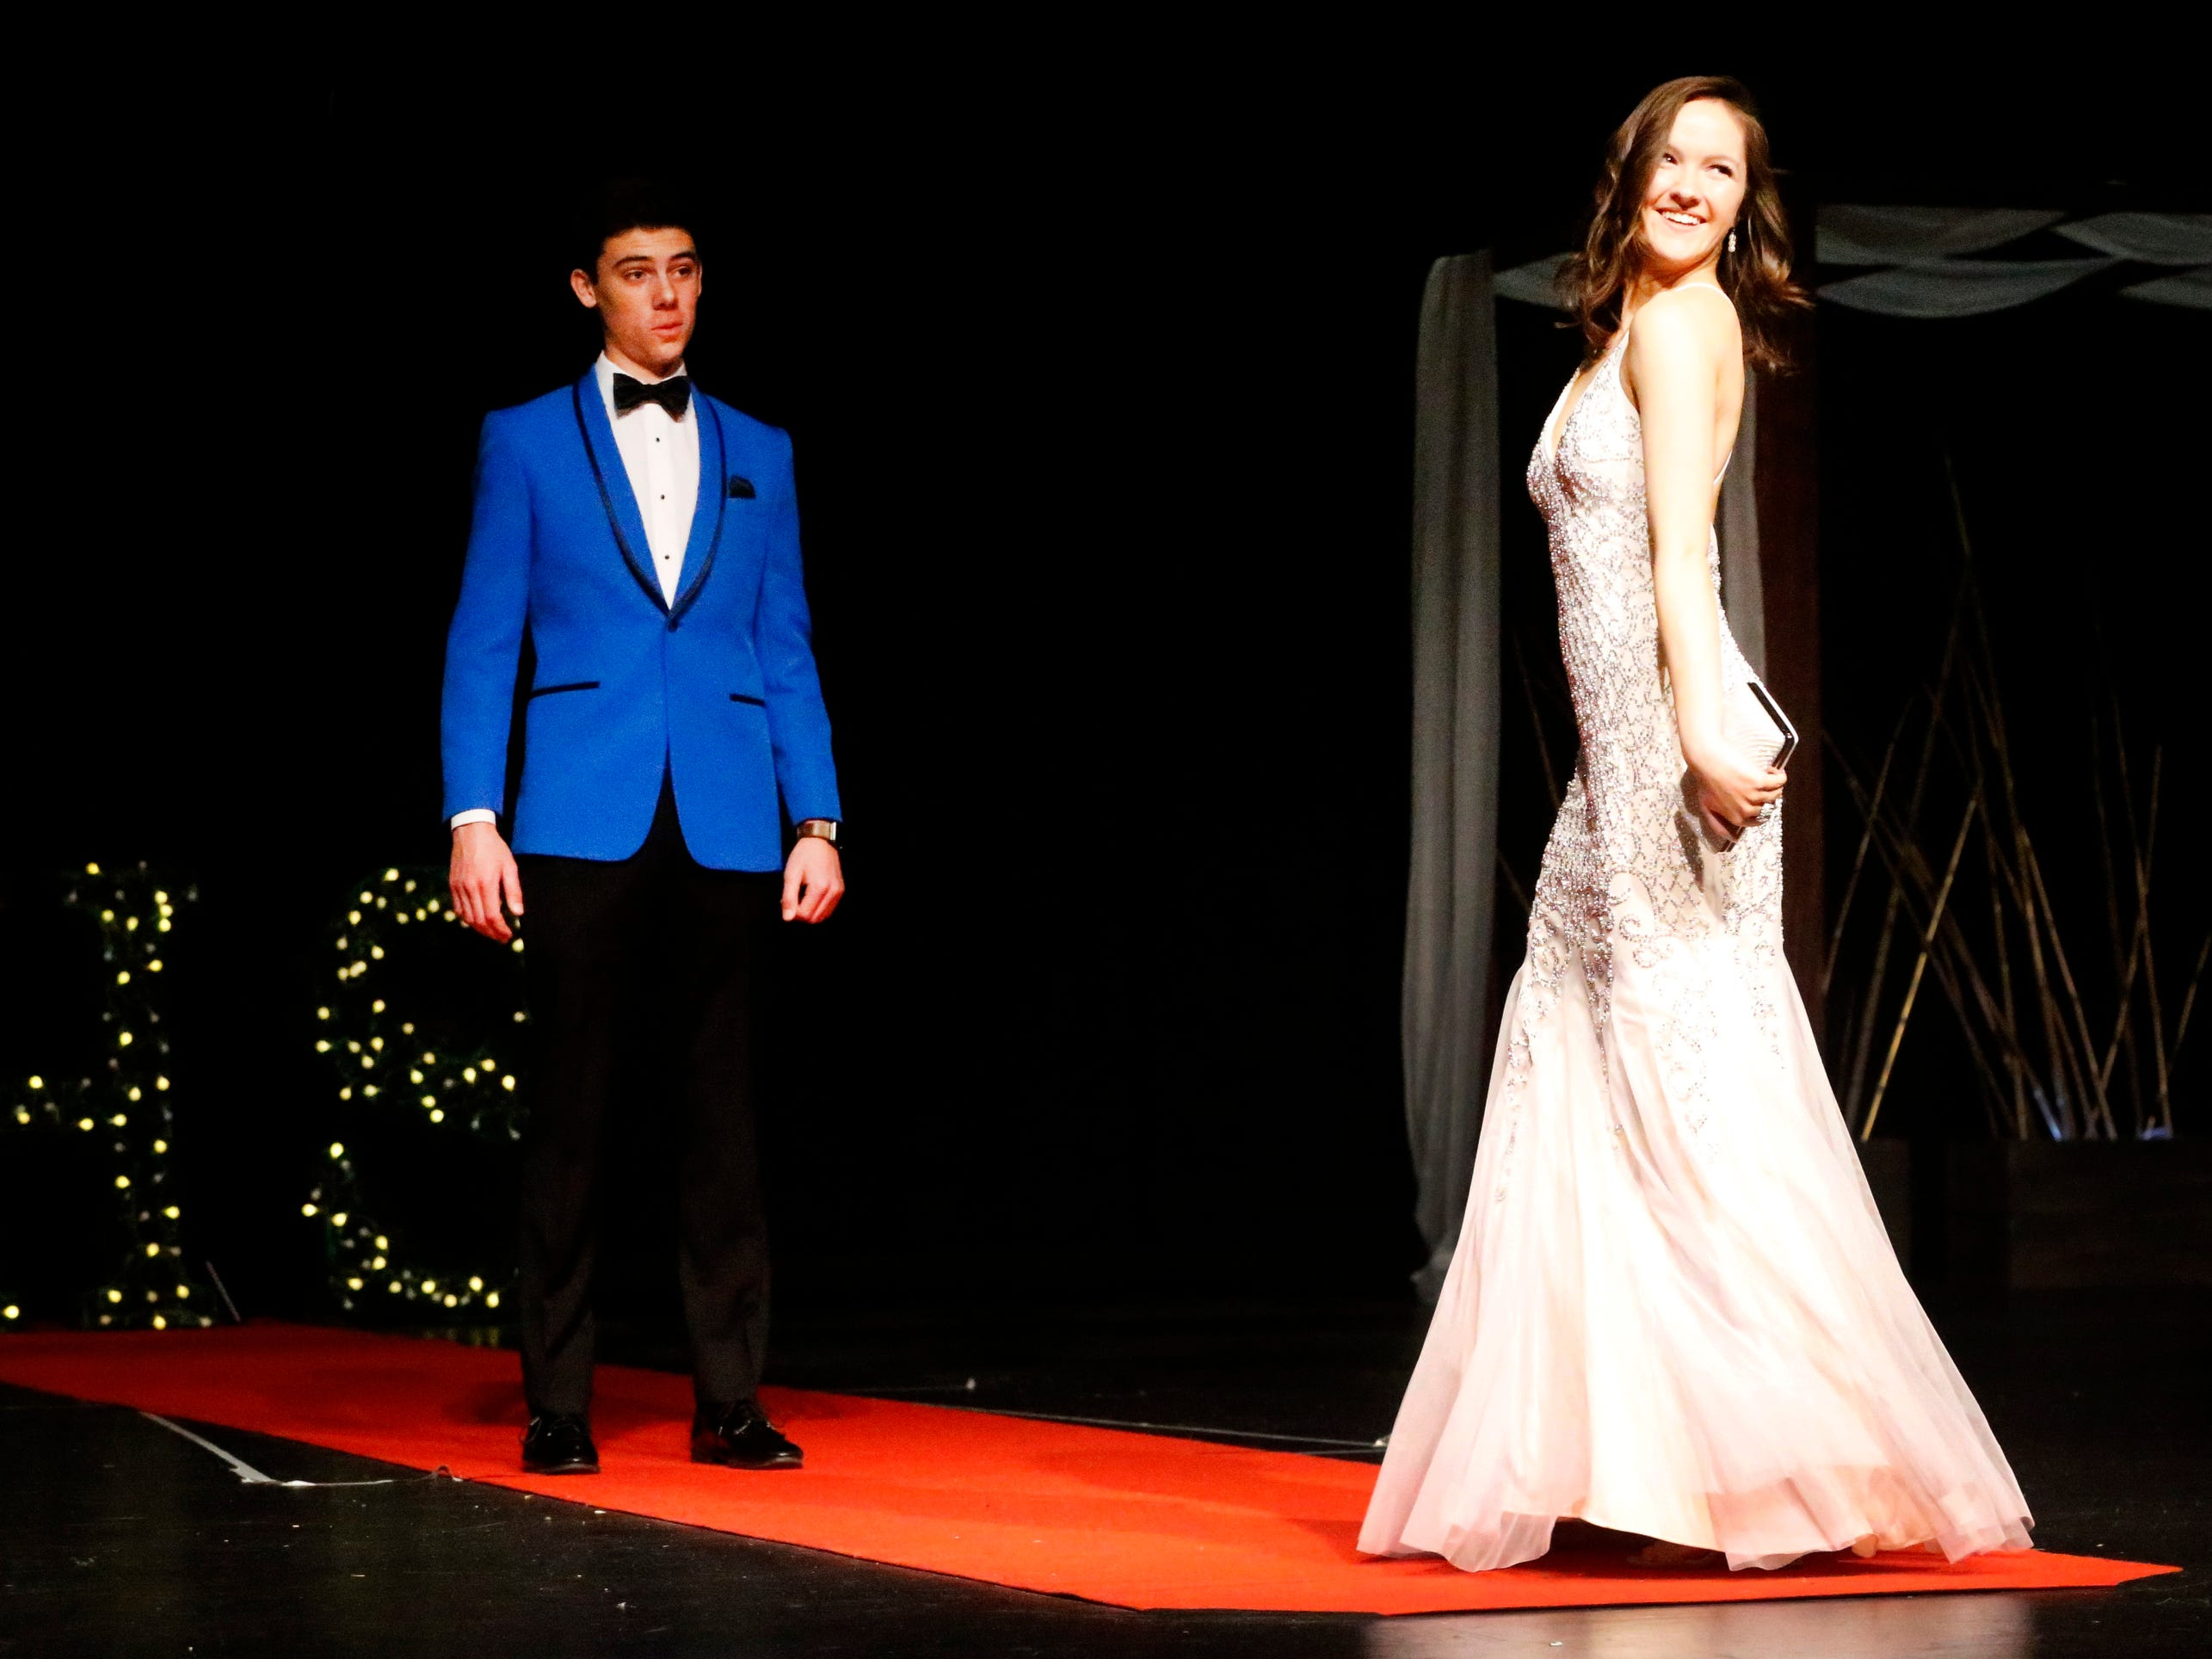 Lucy Bridges steps forward to show off her dress as Adam Lalance waits to show off his tux during the Siegel Prom Fashion show on Thursday, Feb. 14, 2019.